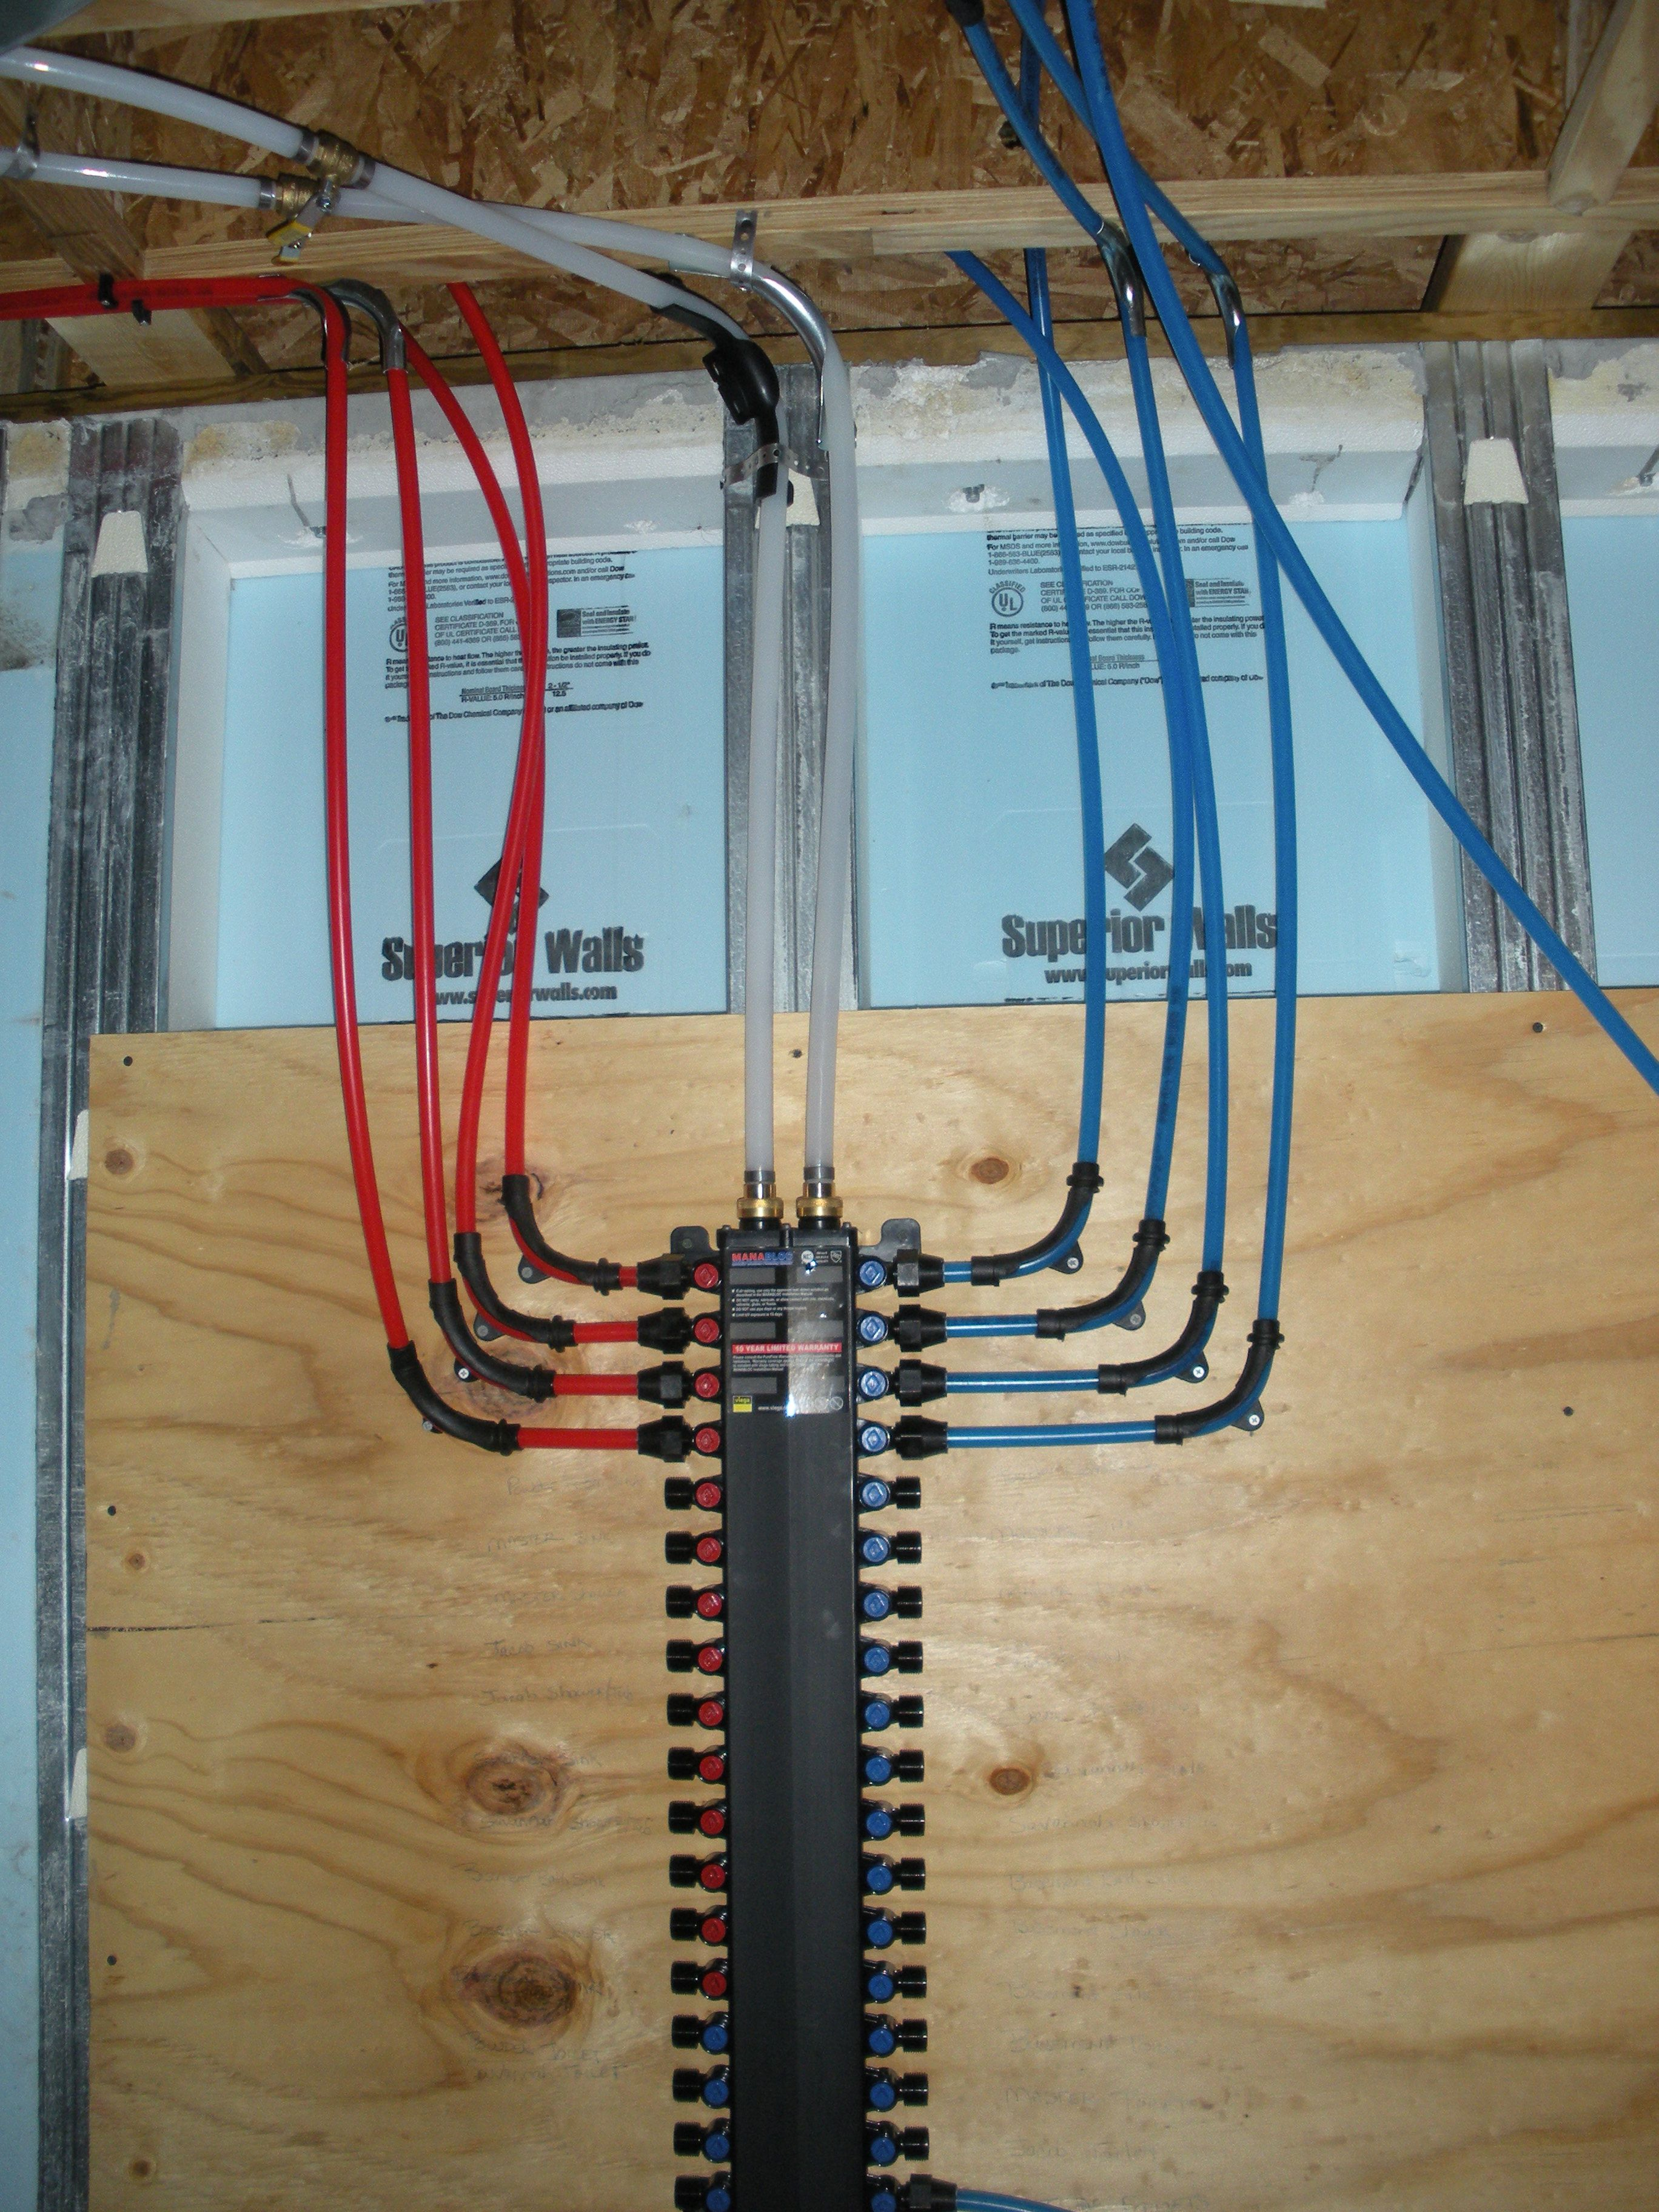 plumbing manifold diagram wiring for electric motor with capacitor best pex google search